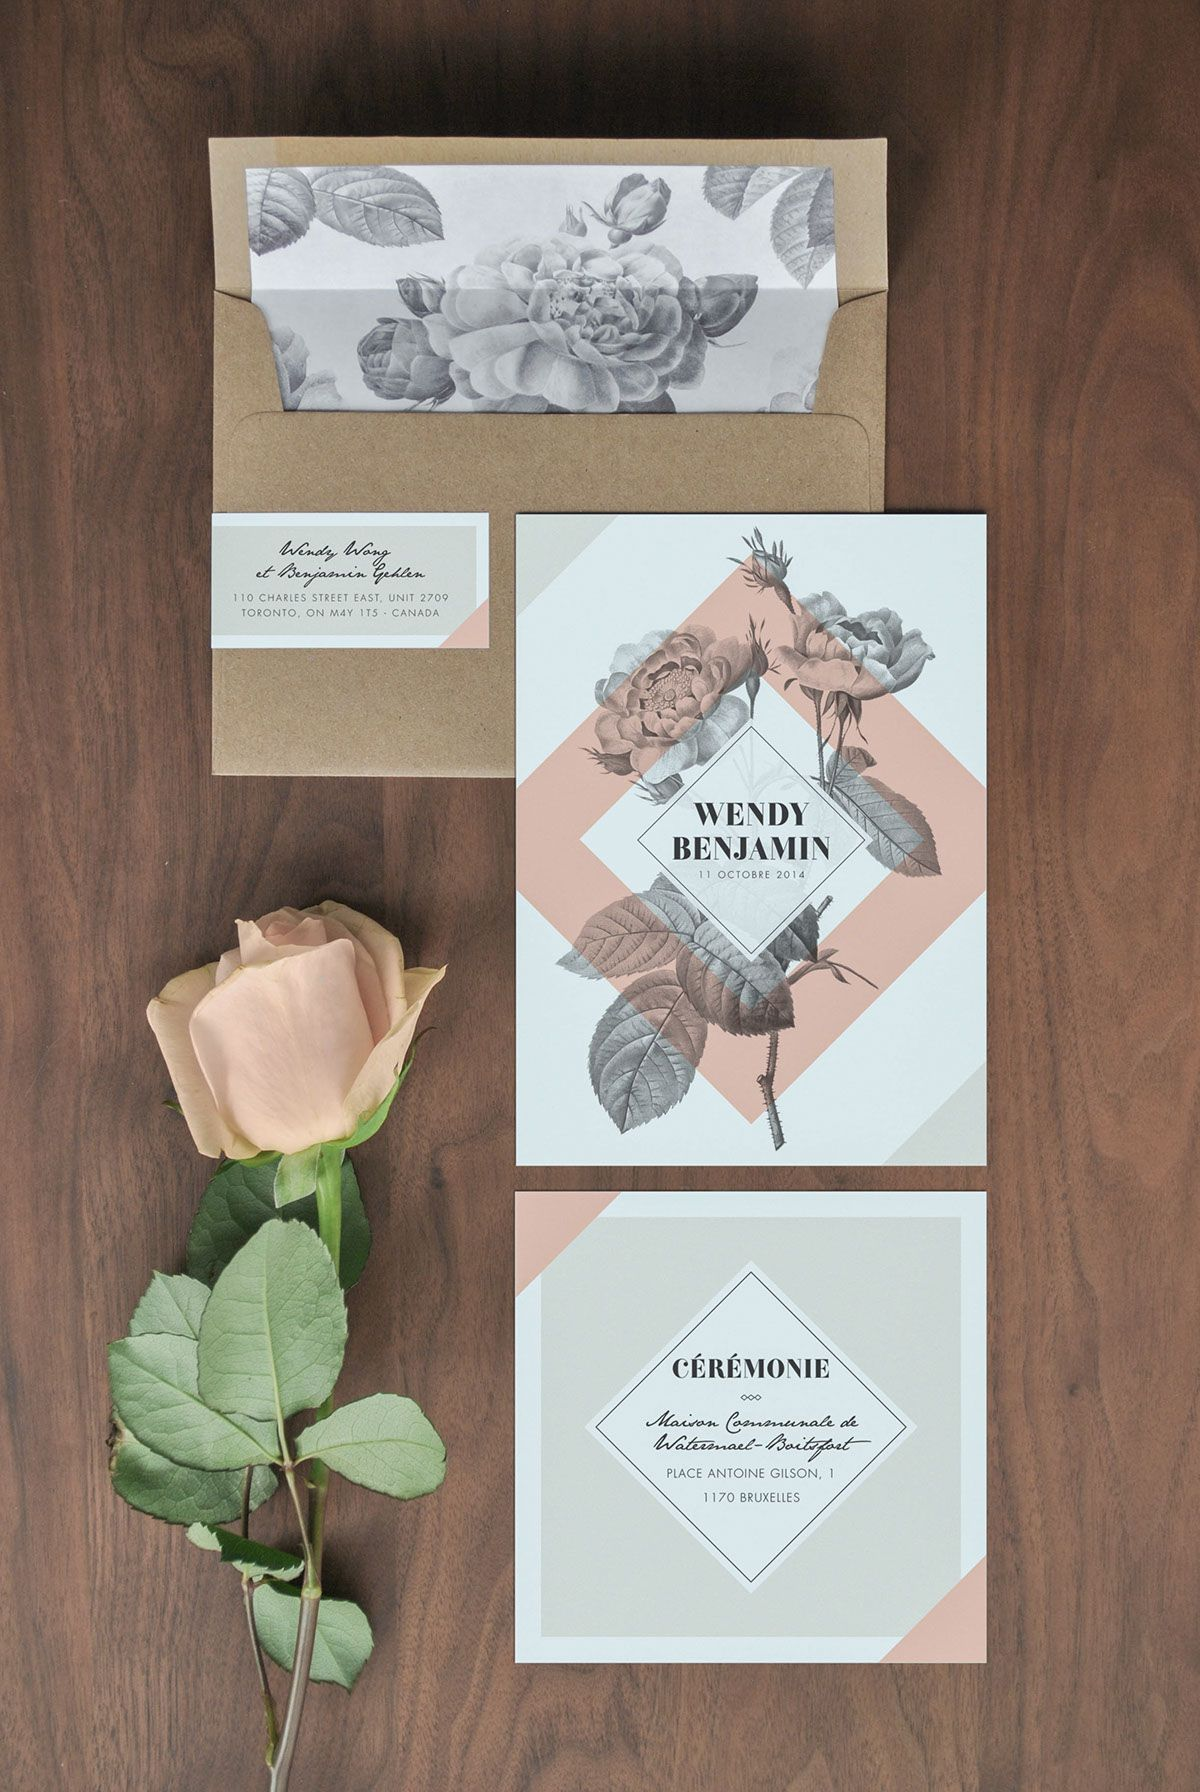 Graphics Designed For My Own Wedding Which Include Invitations